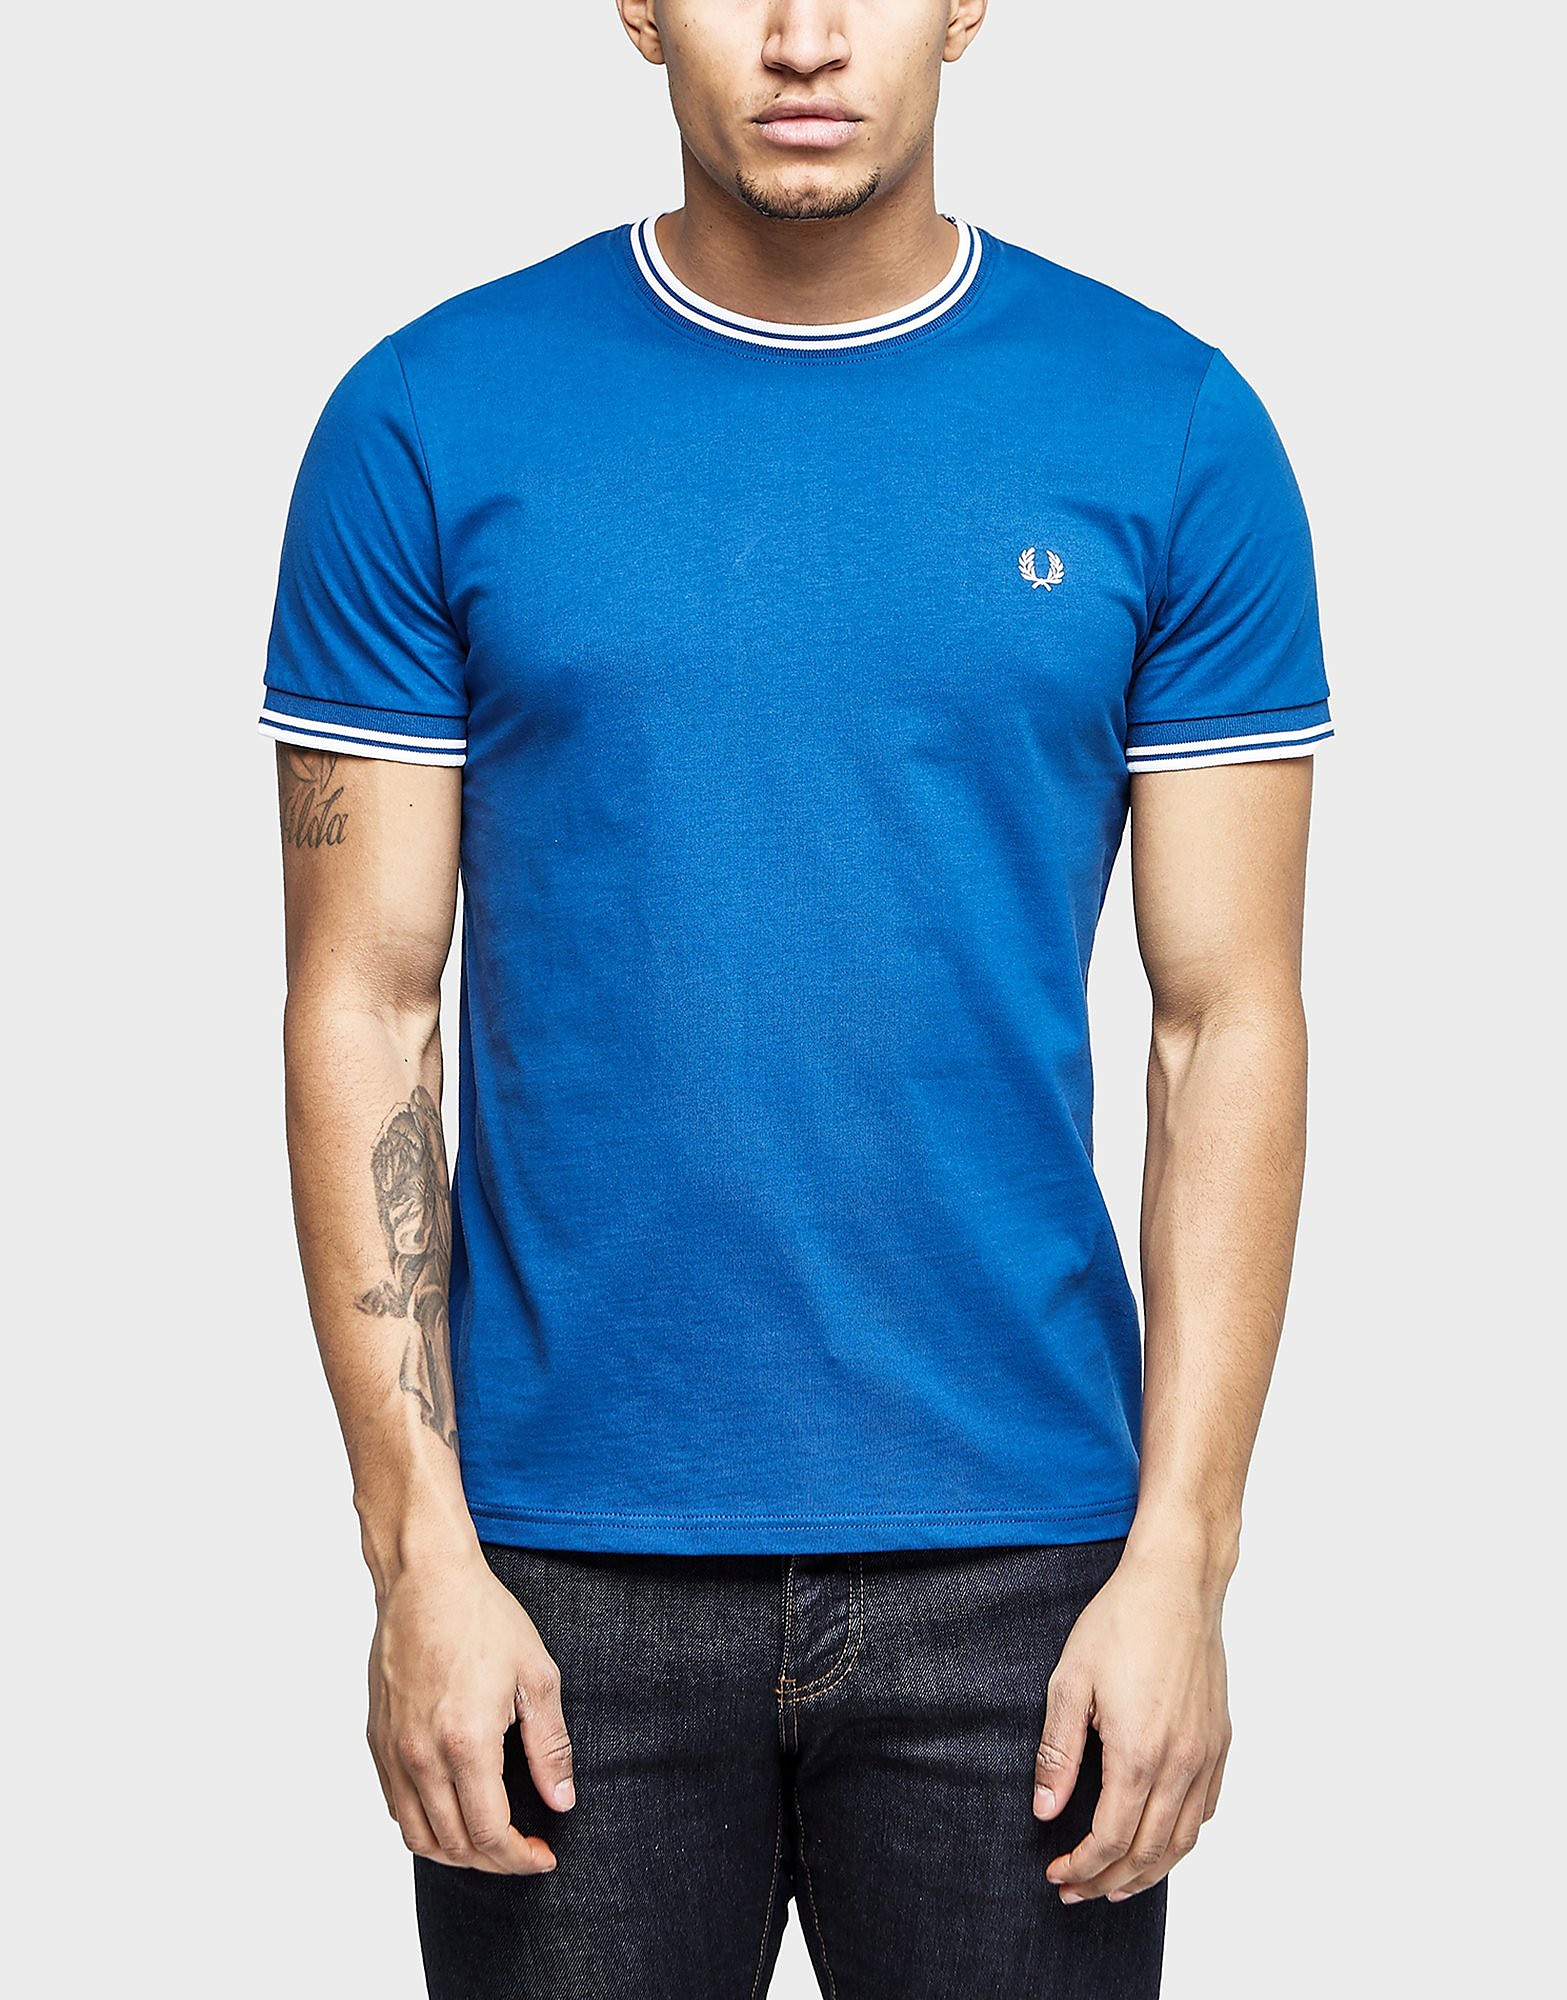 Fred Perry Tipped Crew Short Sleeve T-Shirt - Exclusive